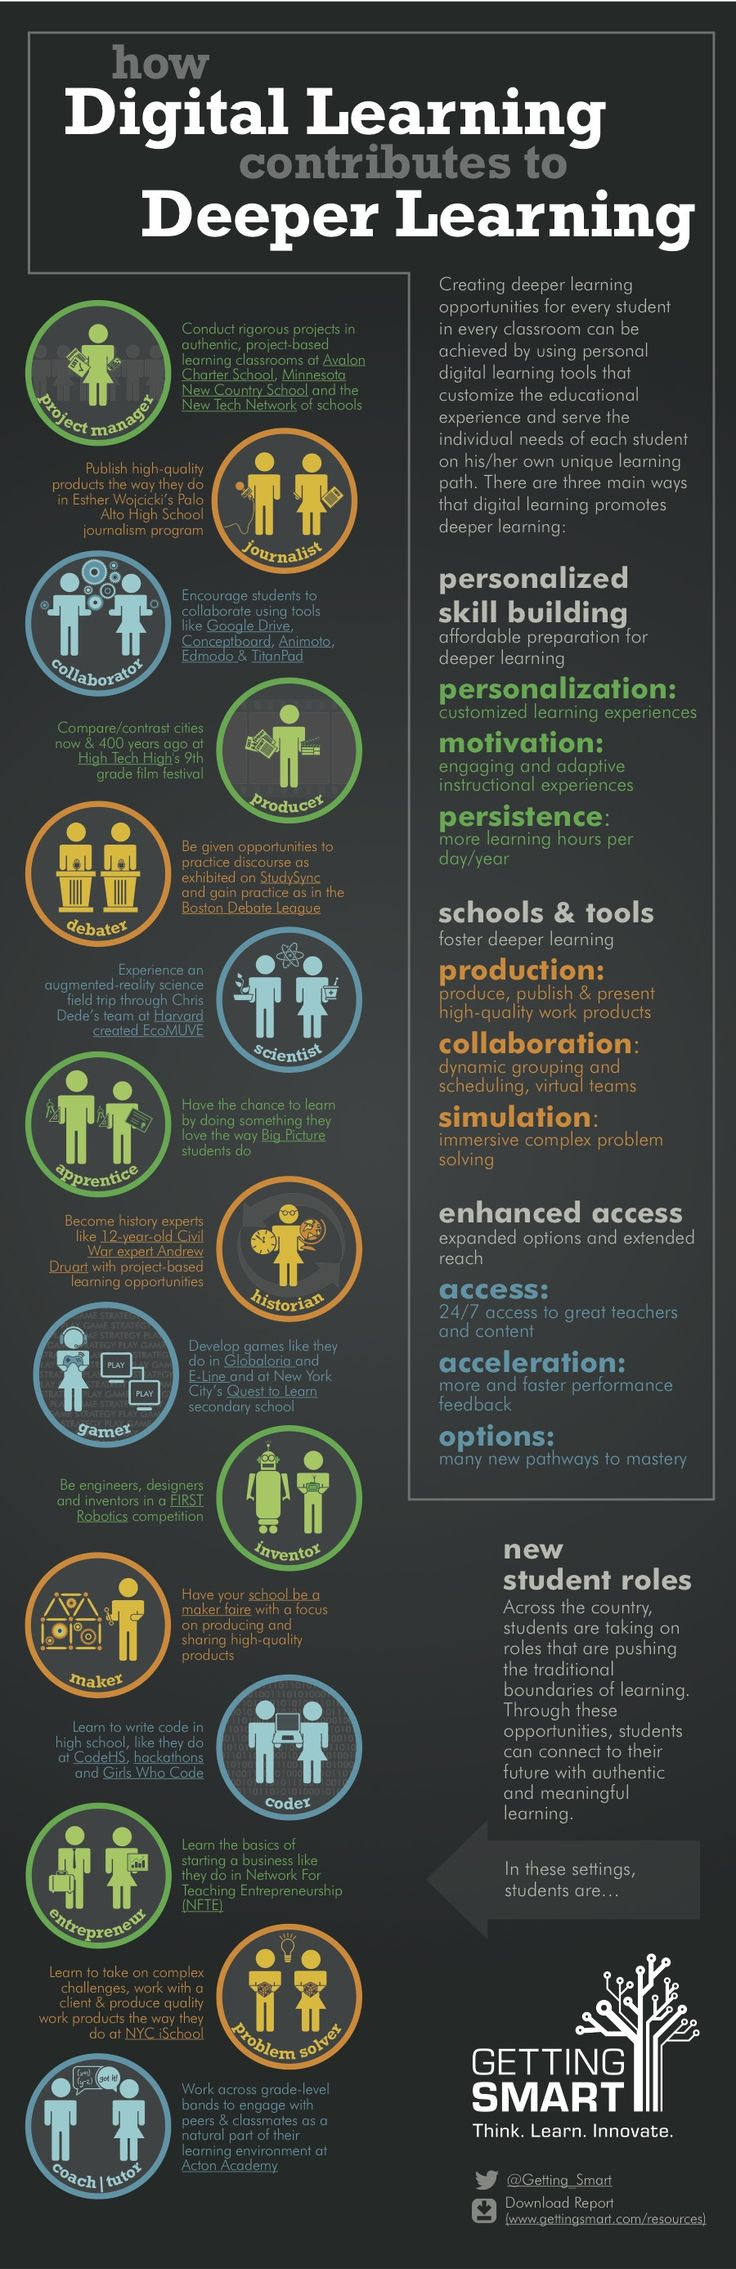 INFOGRAPHIC: Digital Learning and Deeper Learning